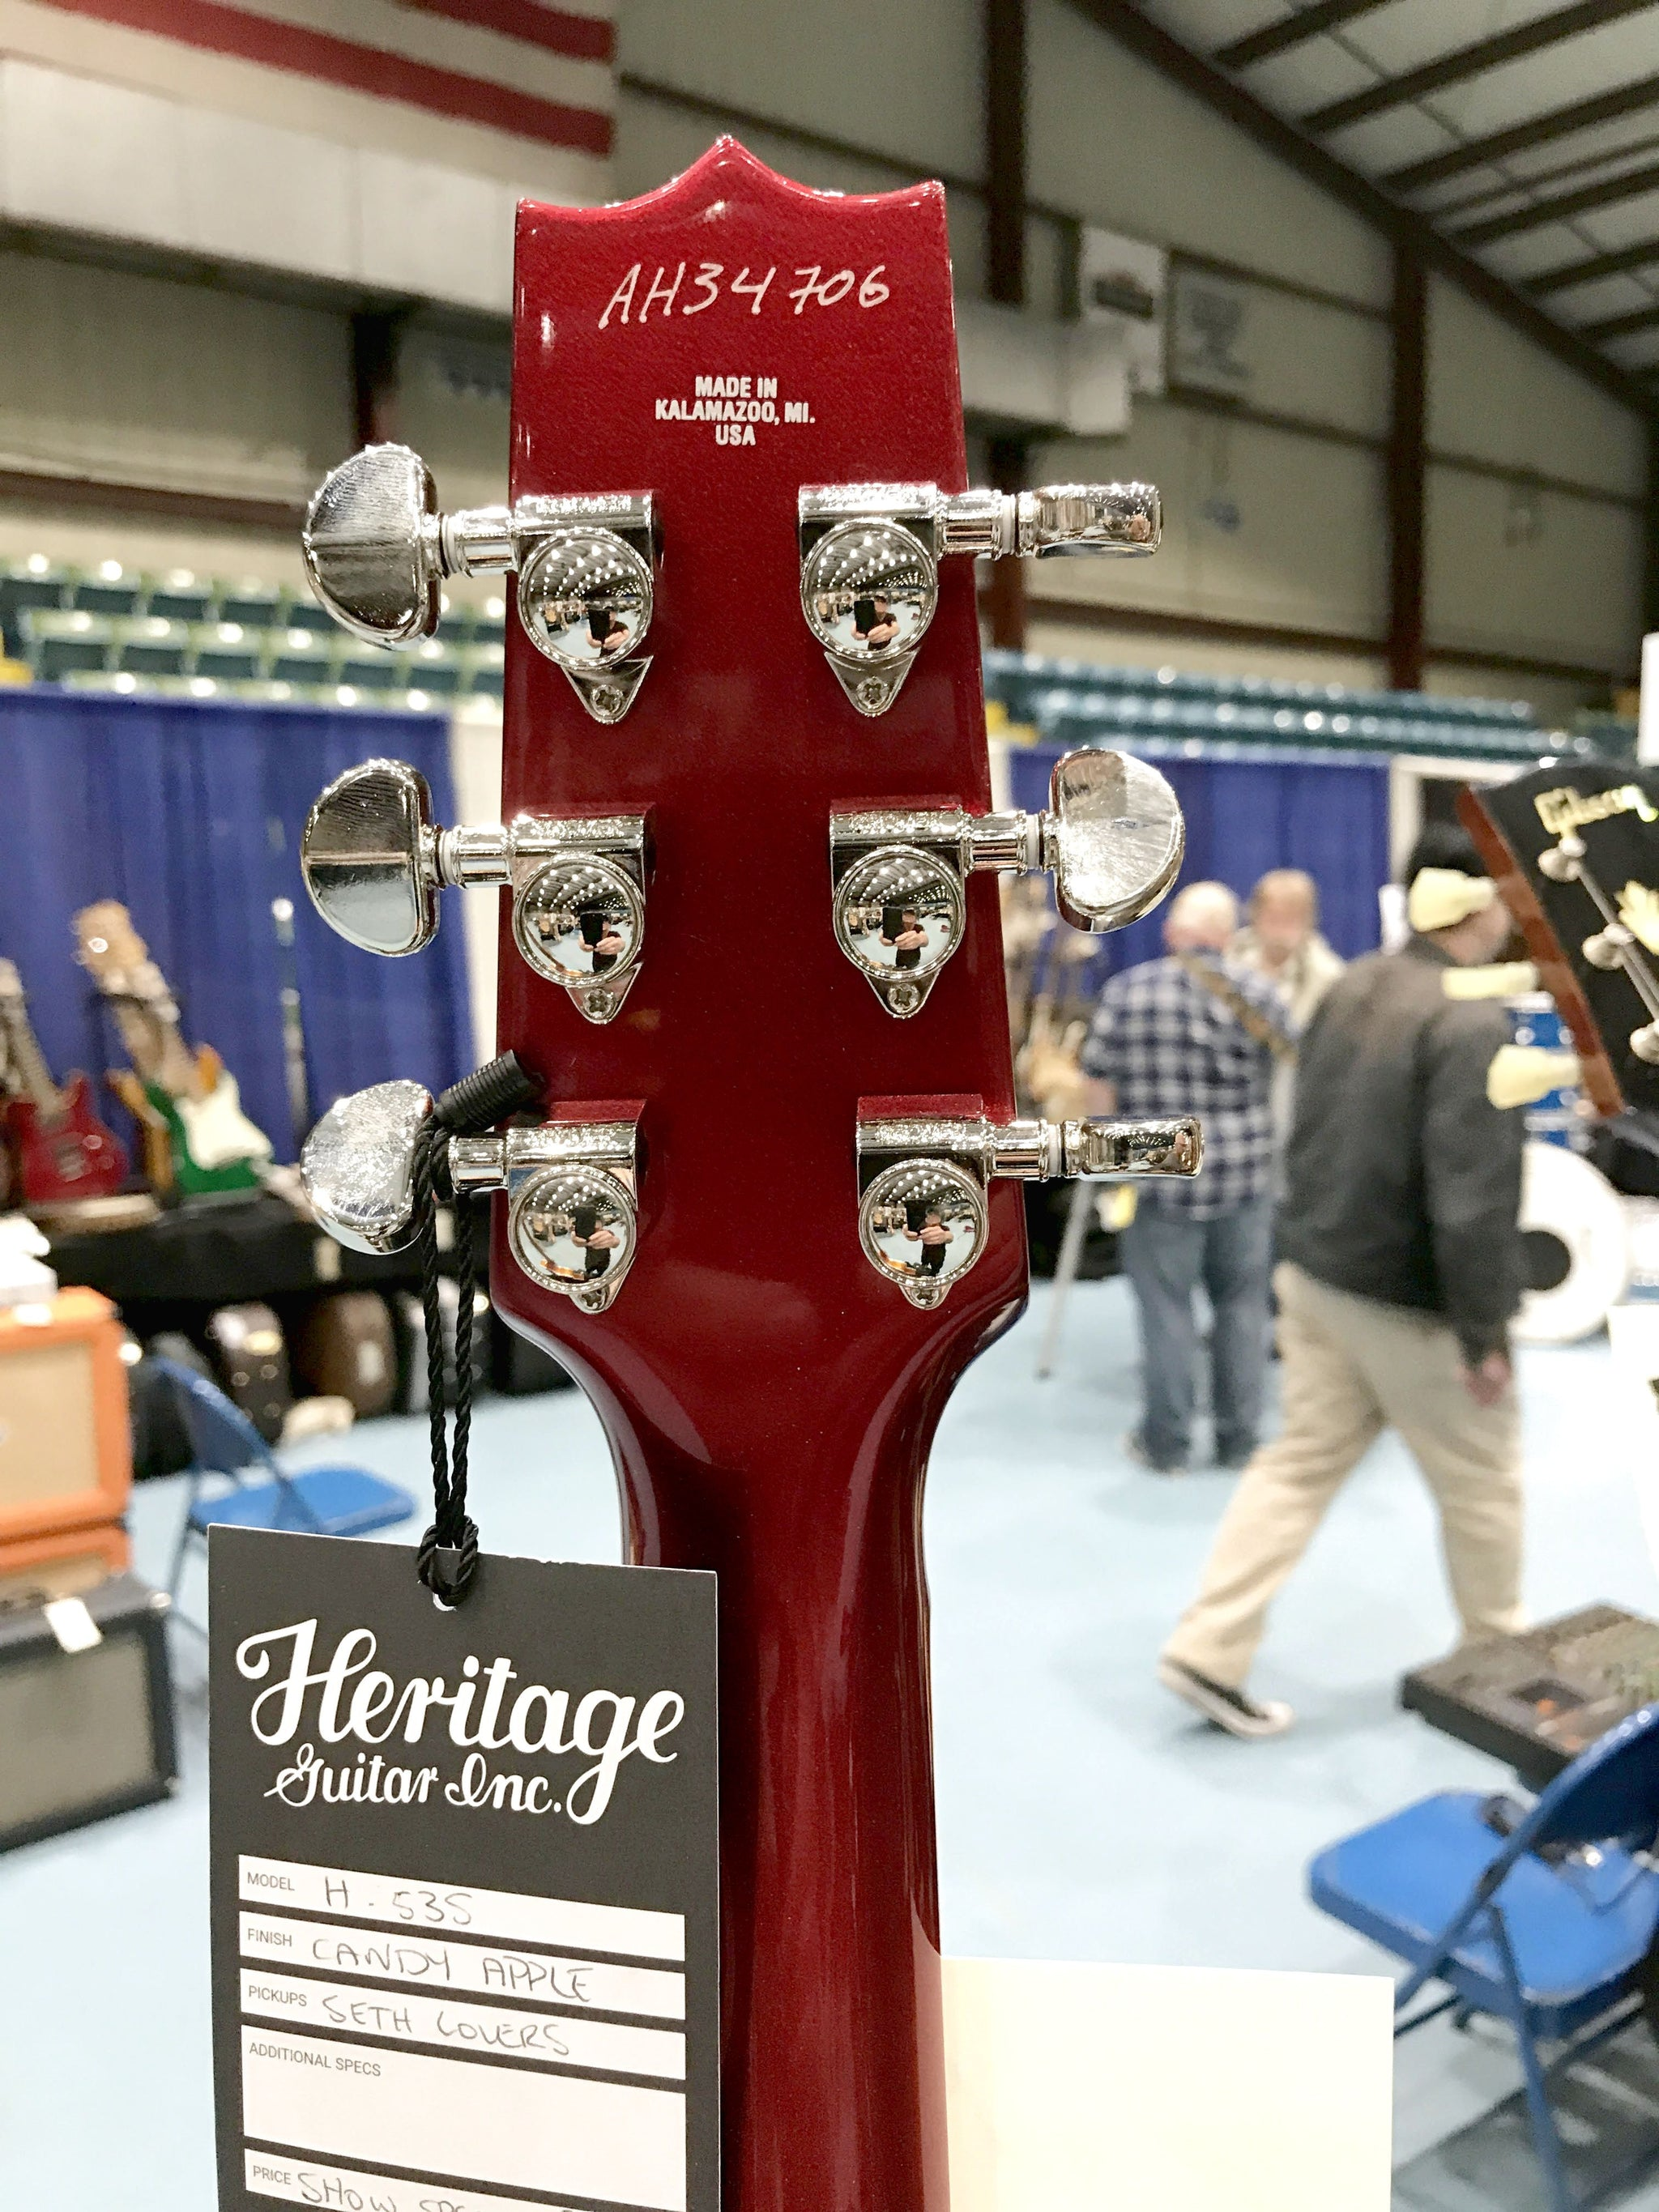 Heritage H 535 Semi Hollow Body in Beautiful Candy Apple Red